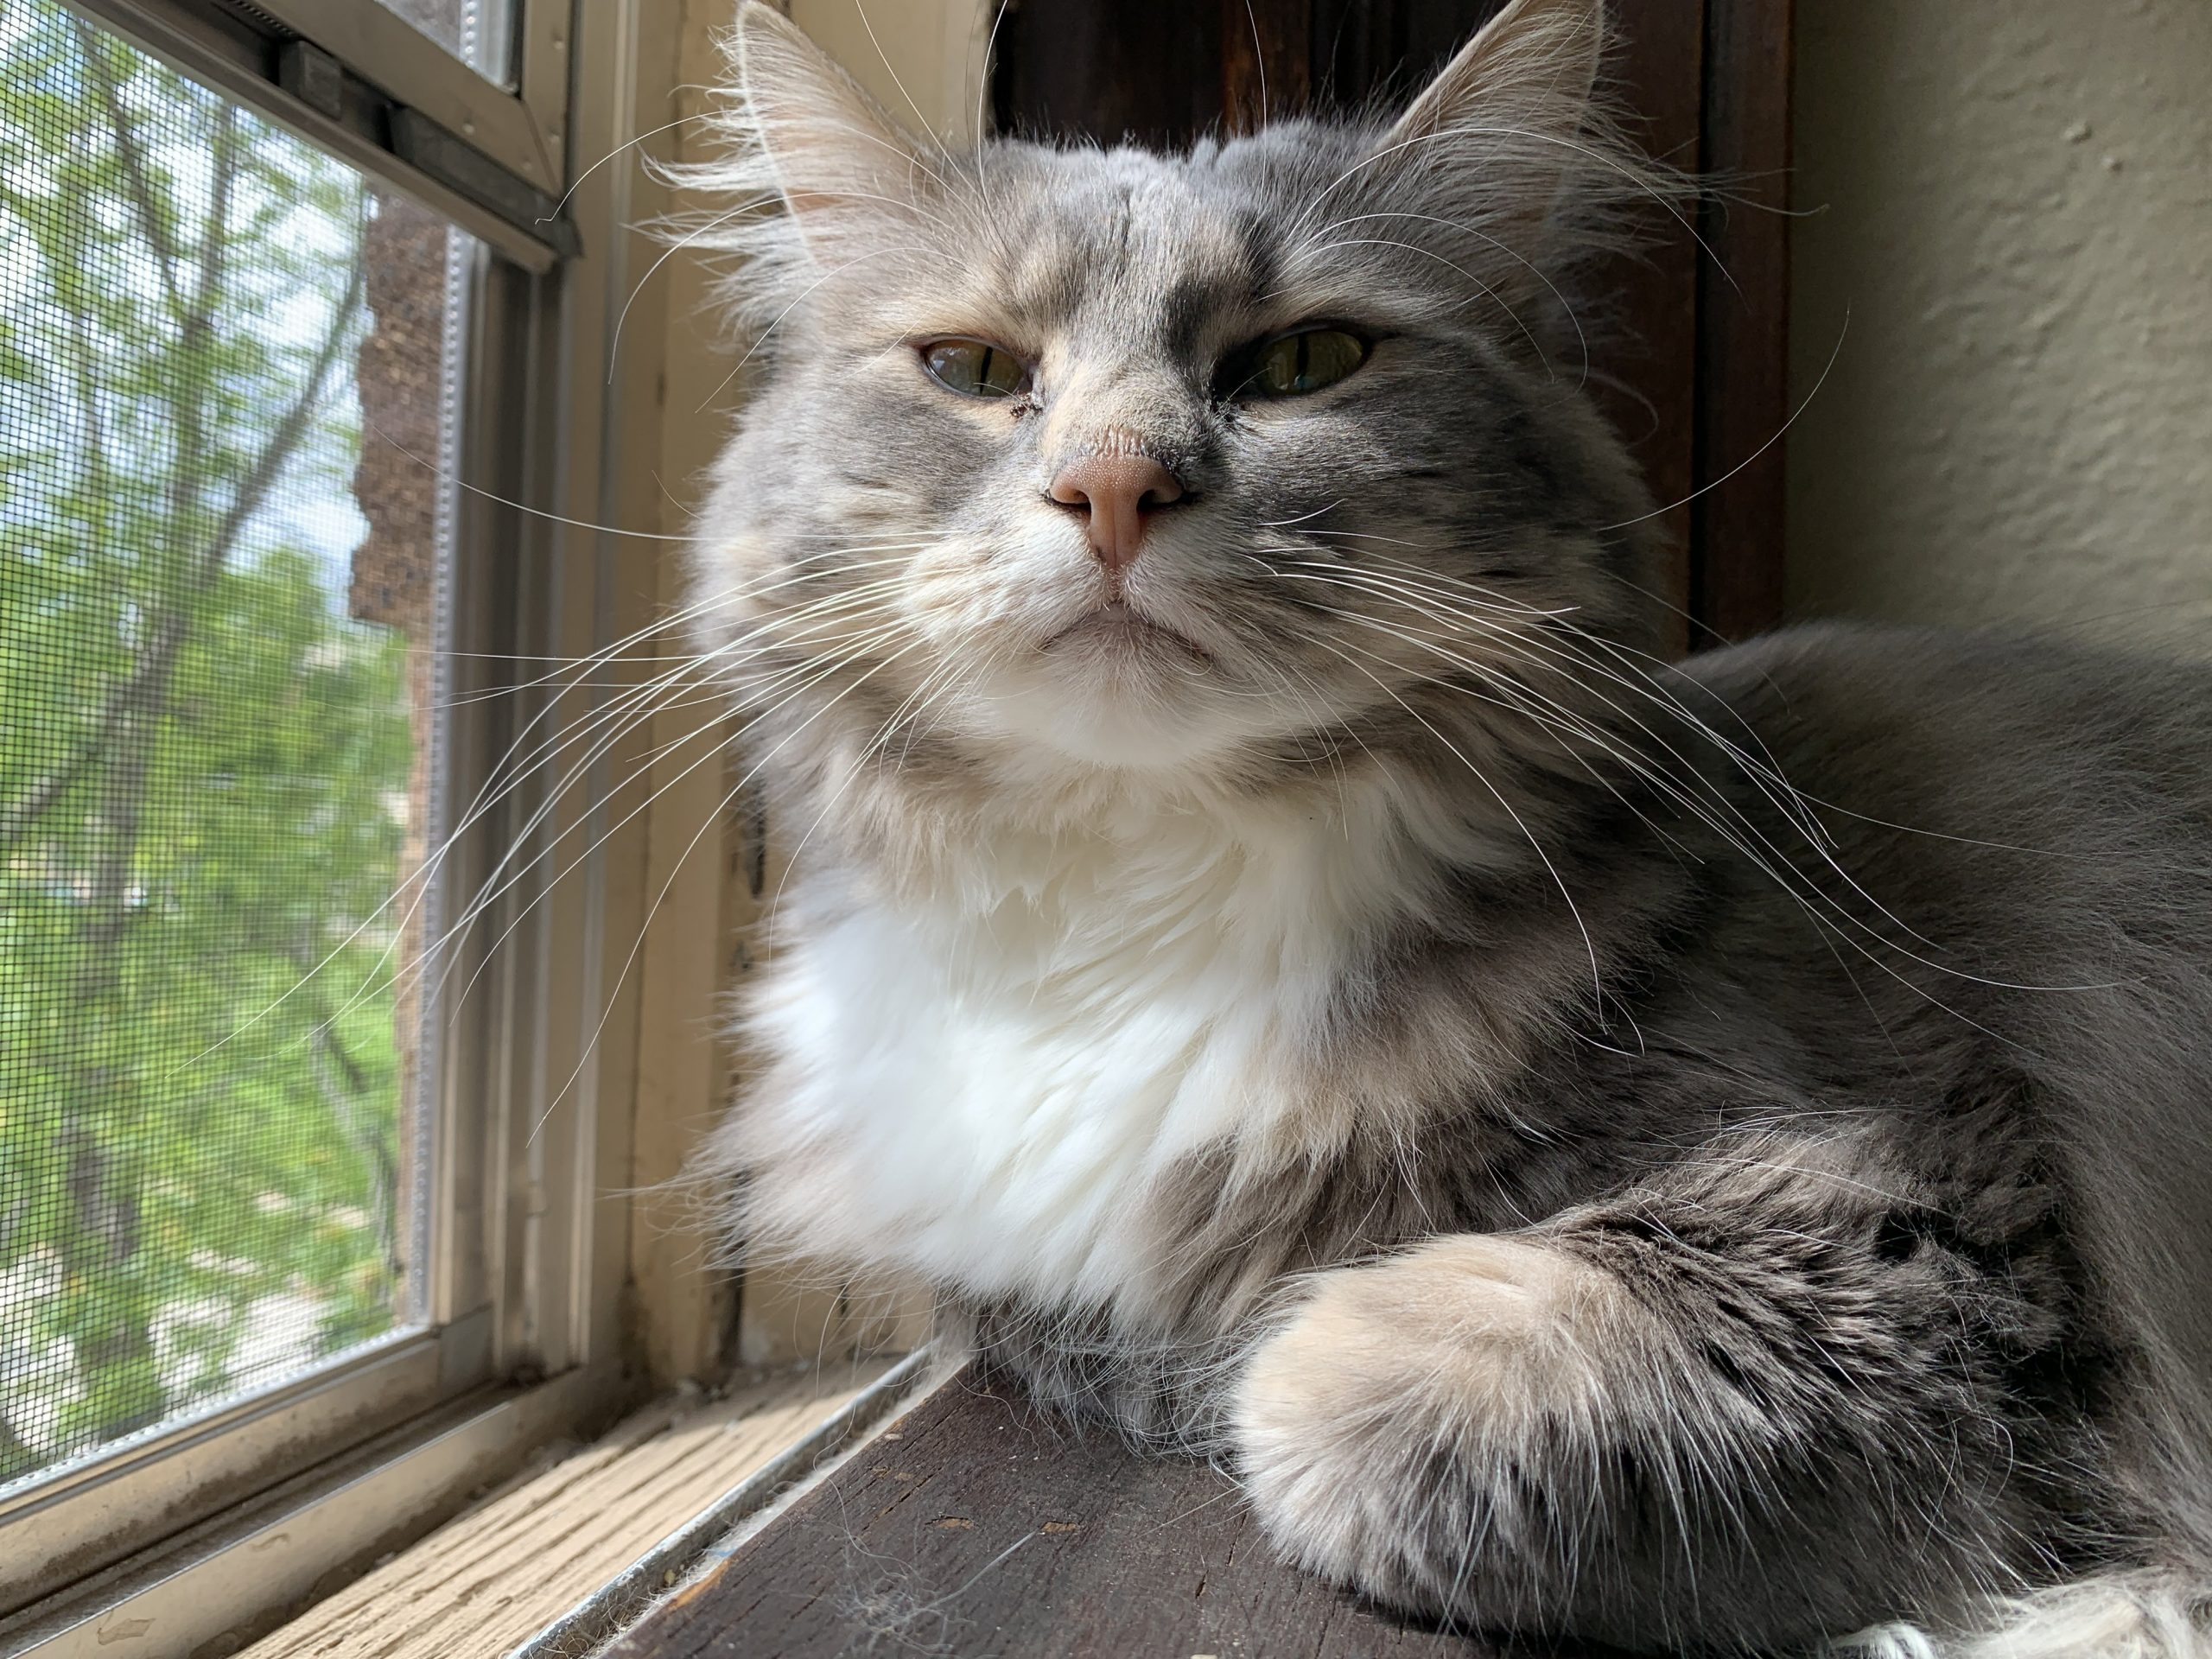 a gray and white cat looks into the camera